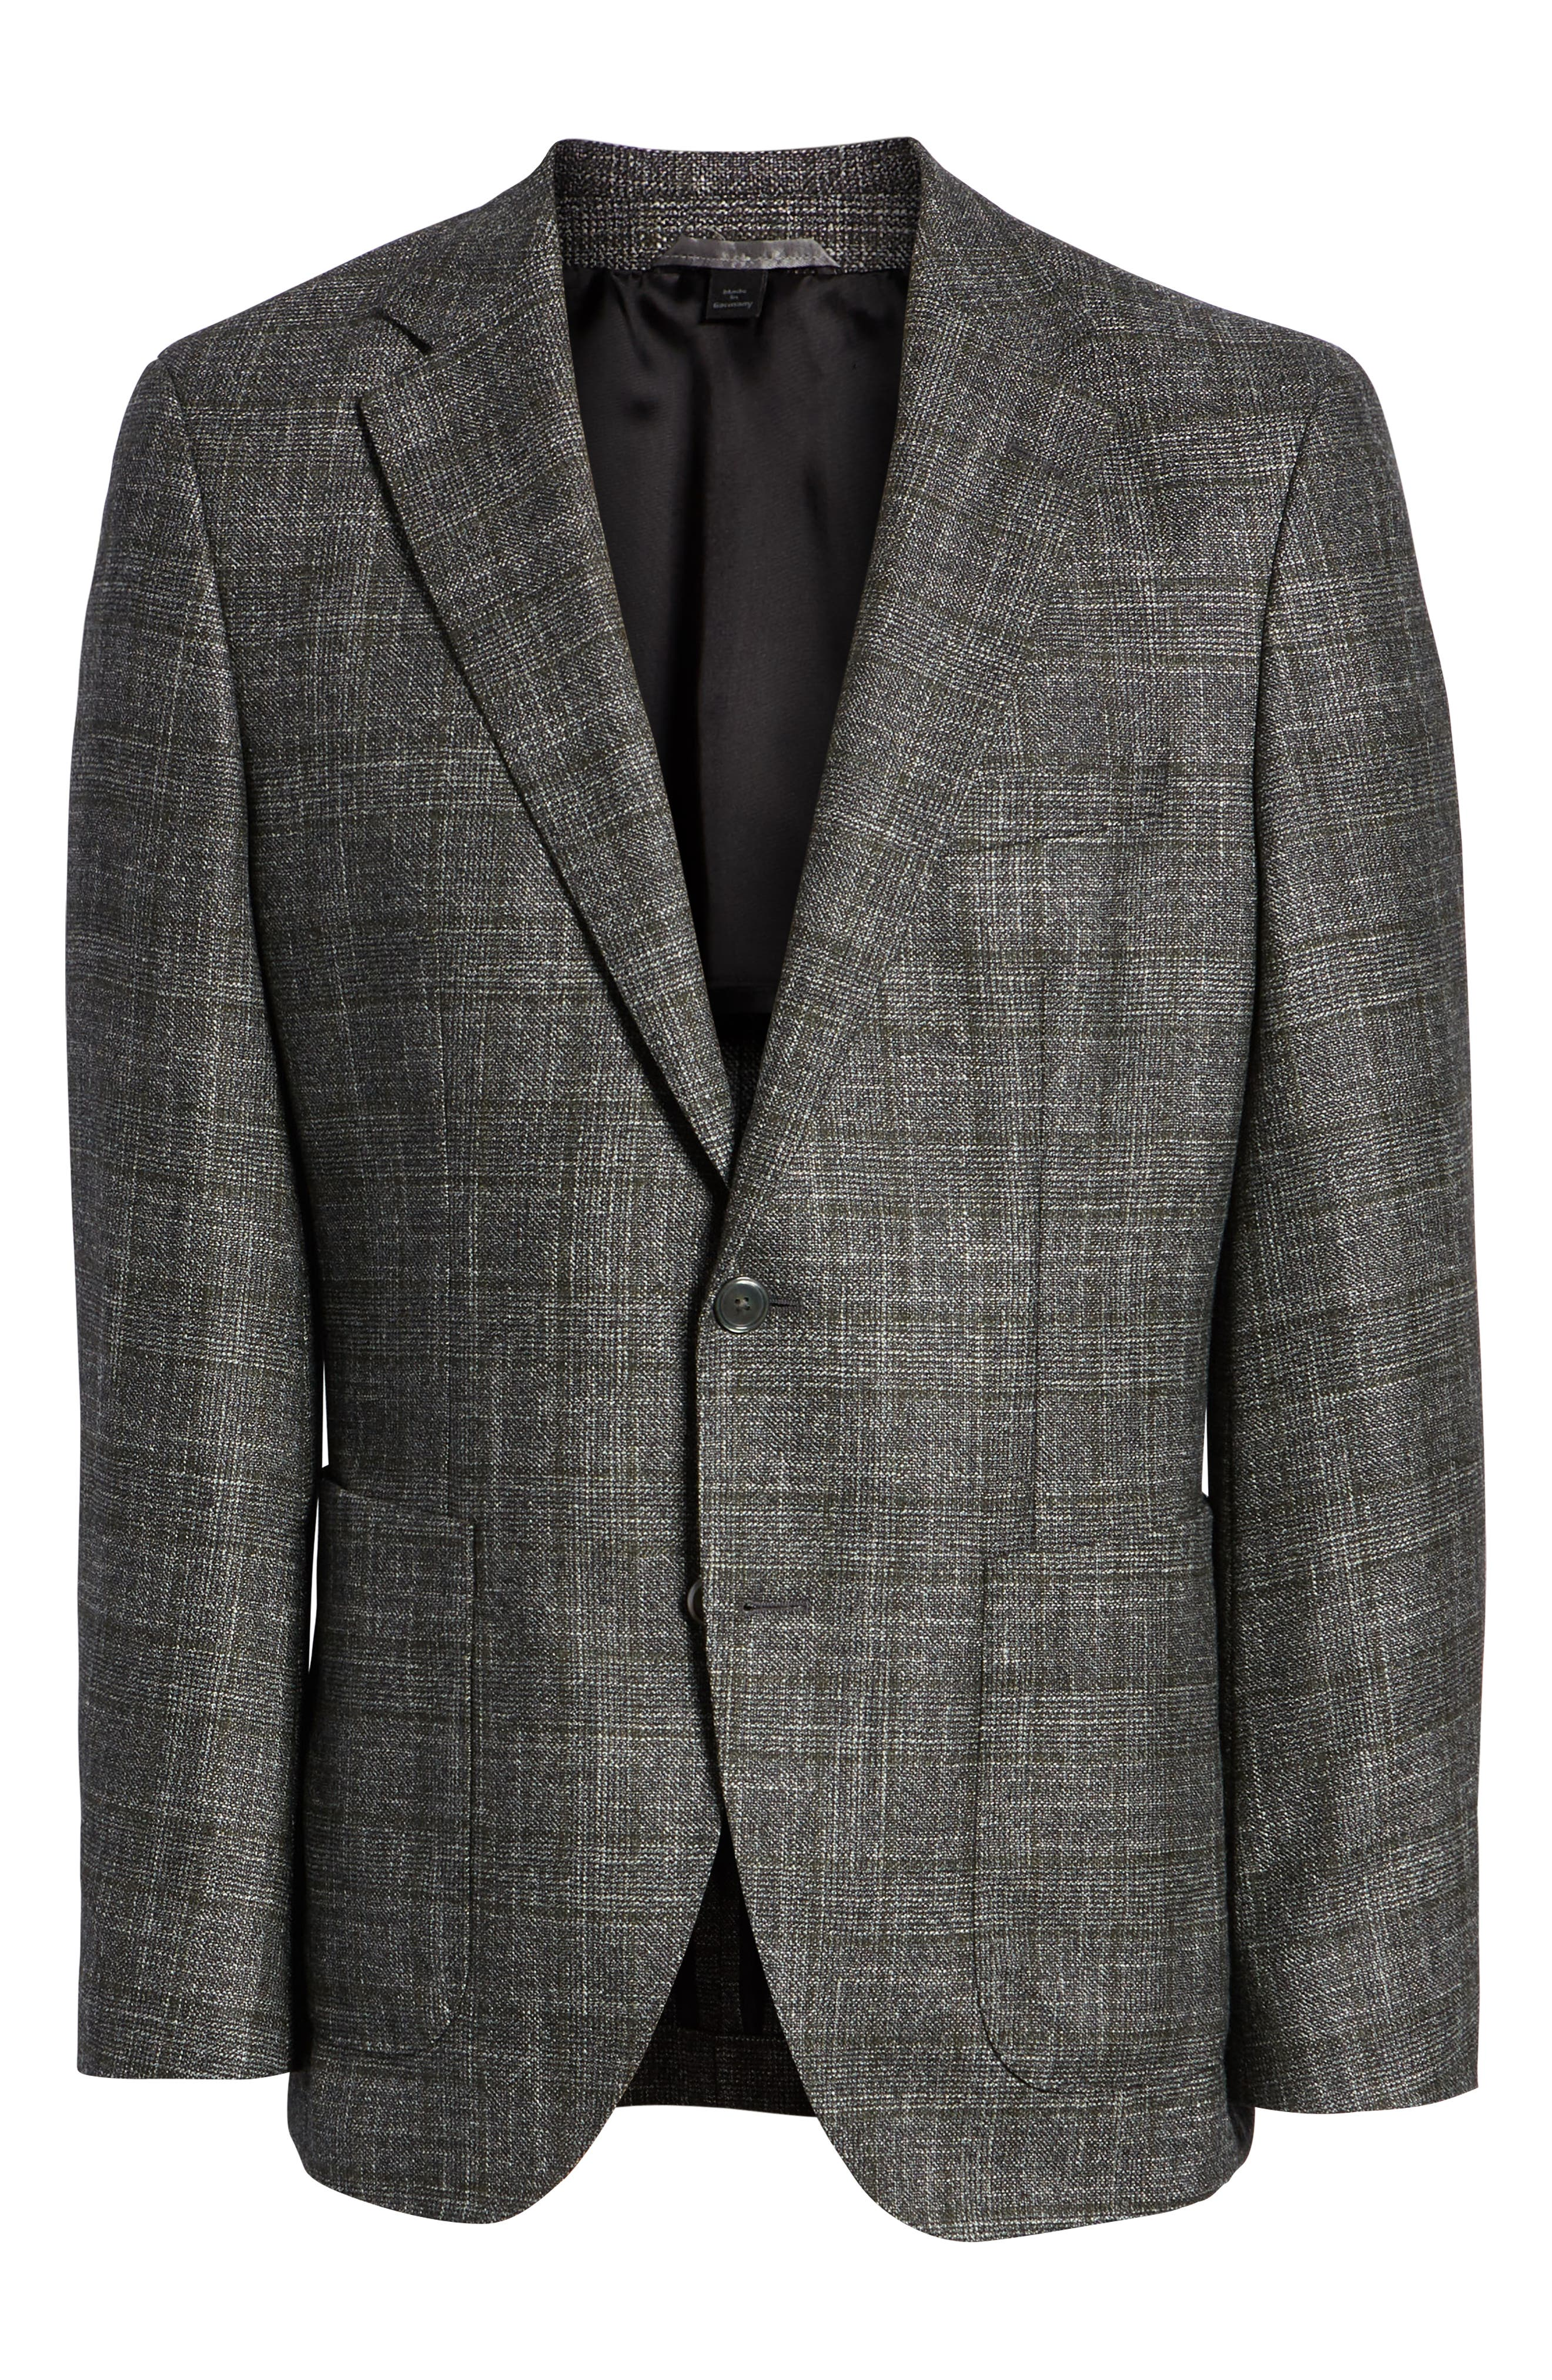 Janson Trim Fit Plaid Wool Blend Sport Coat,                             Alternate thumbnail 5, color,                             061